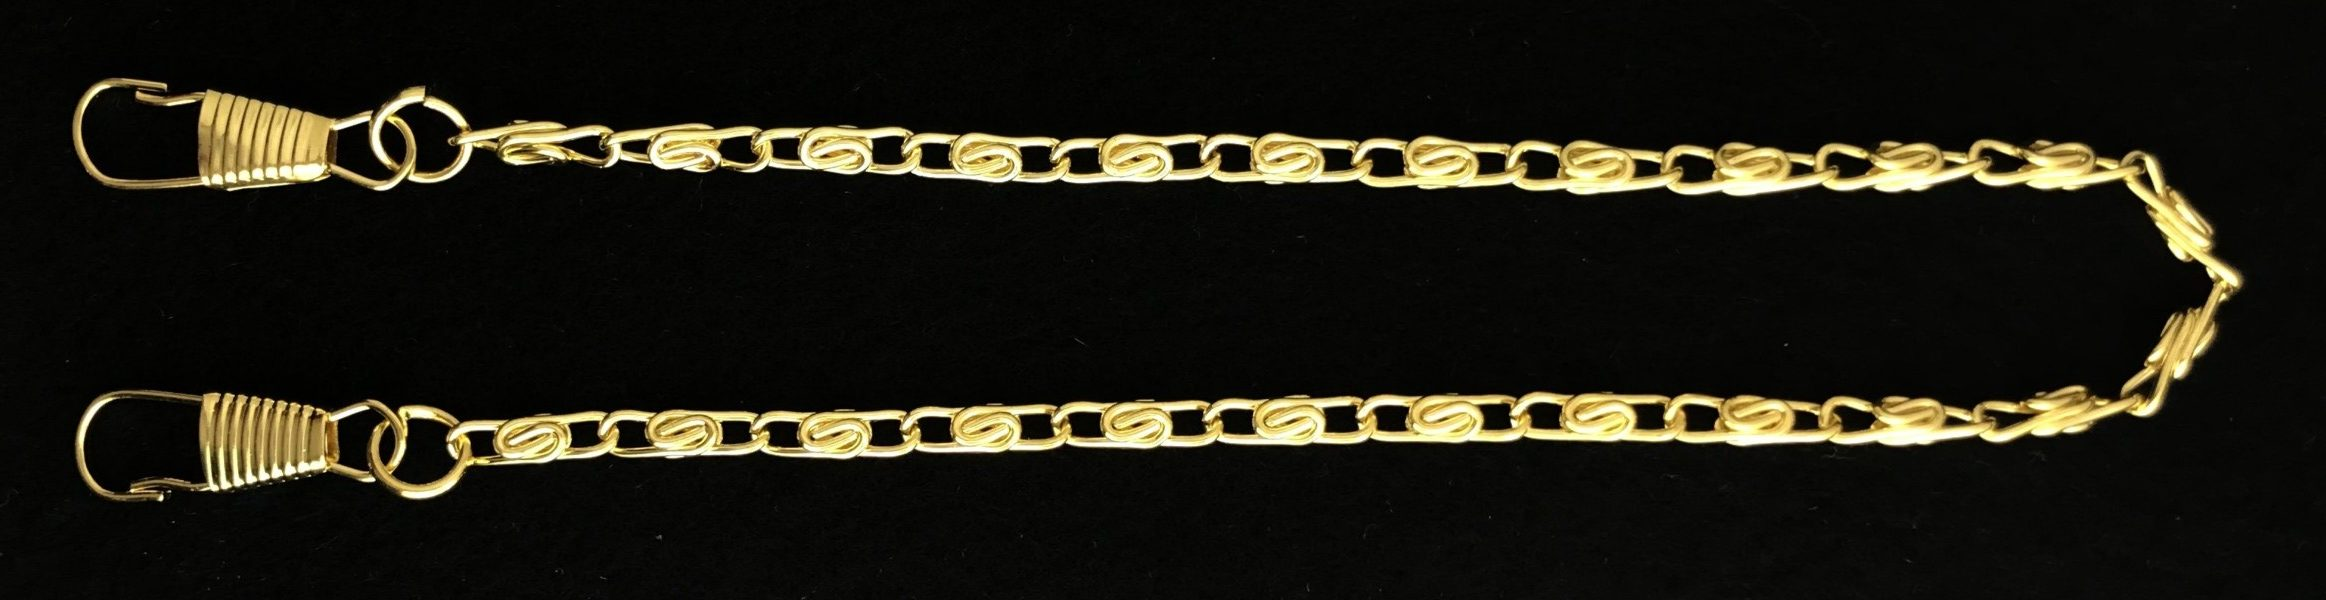 Chain Collar Preventer Chain in Gold Plating - Economy